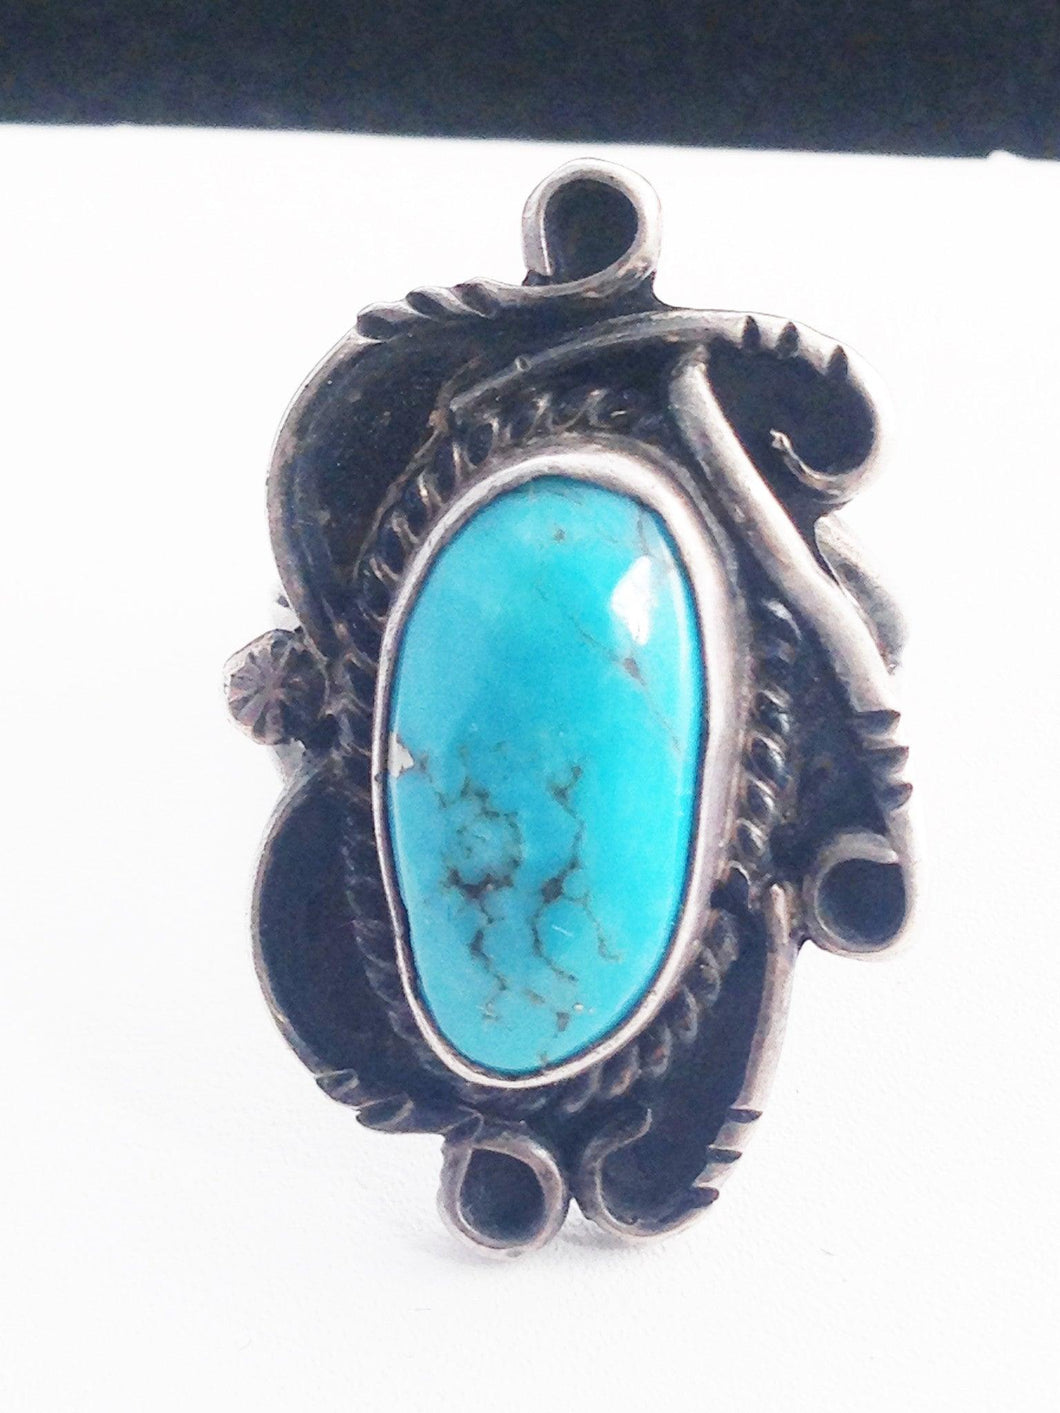 Navajo Native American Sterling Silver Turquoise Ring